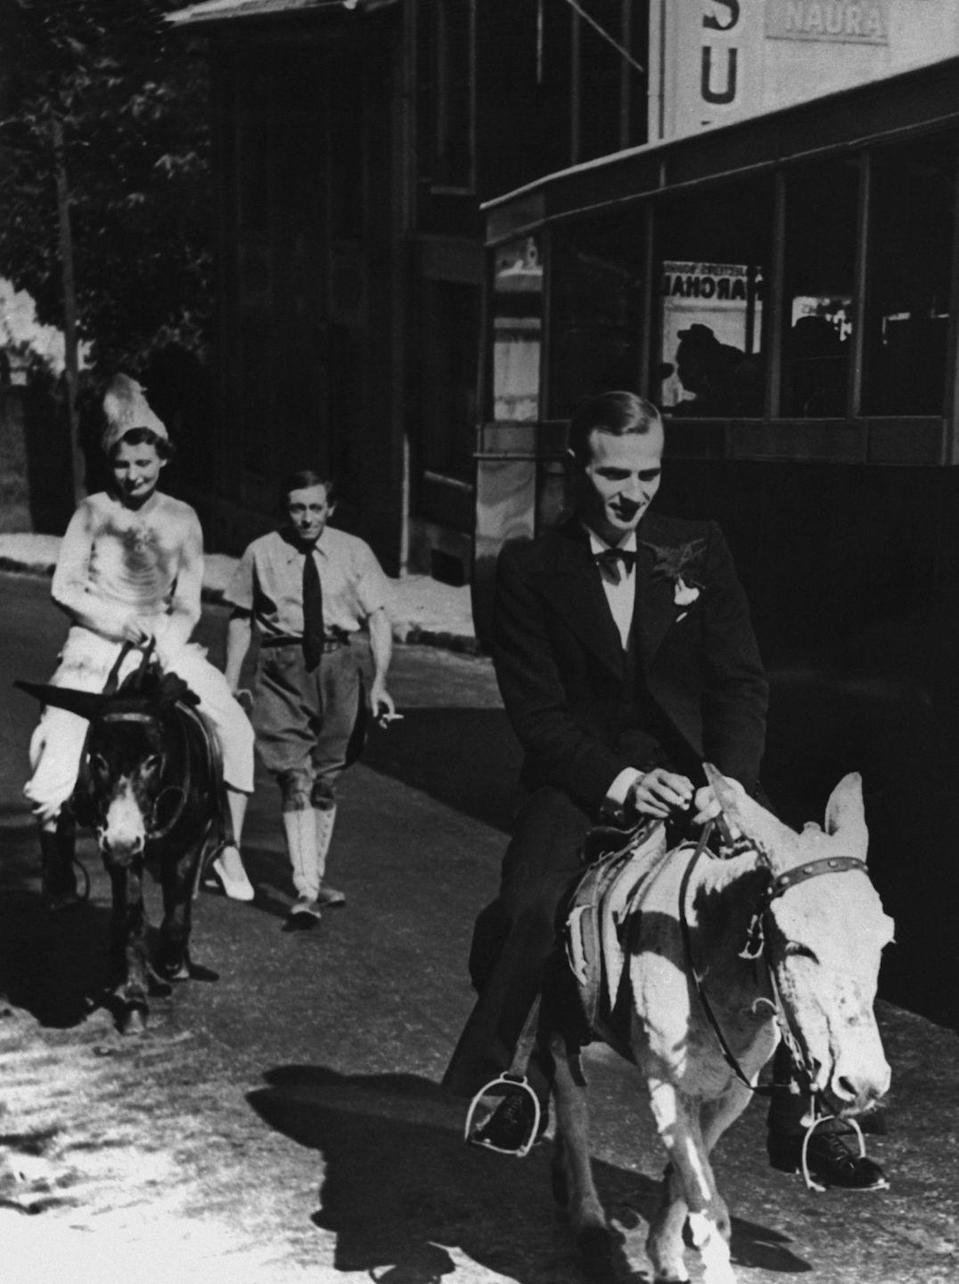 <p>During World War II, fuel shortages were common in occupied France. As a result, couples got creative with transportation, which is why this bride-and-groom hitched a ride on a pair of donkeys. </p>